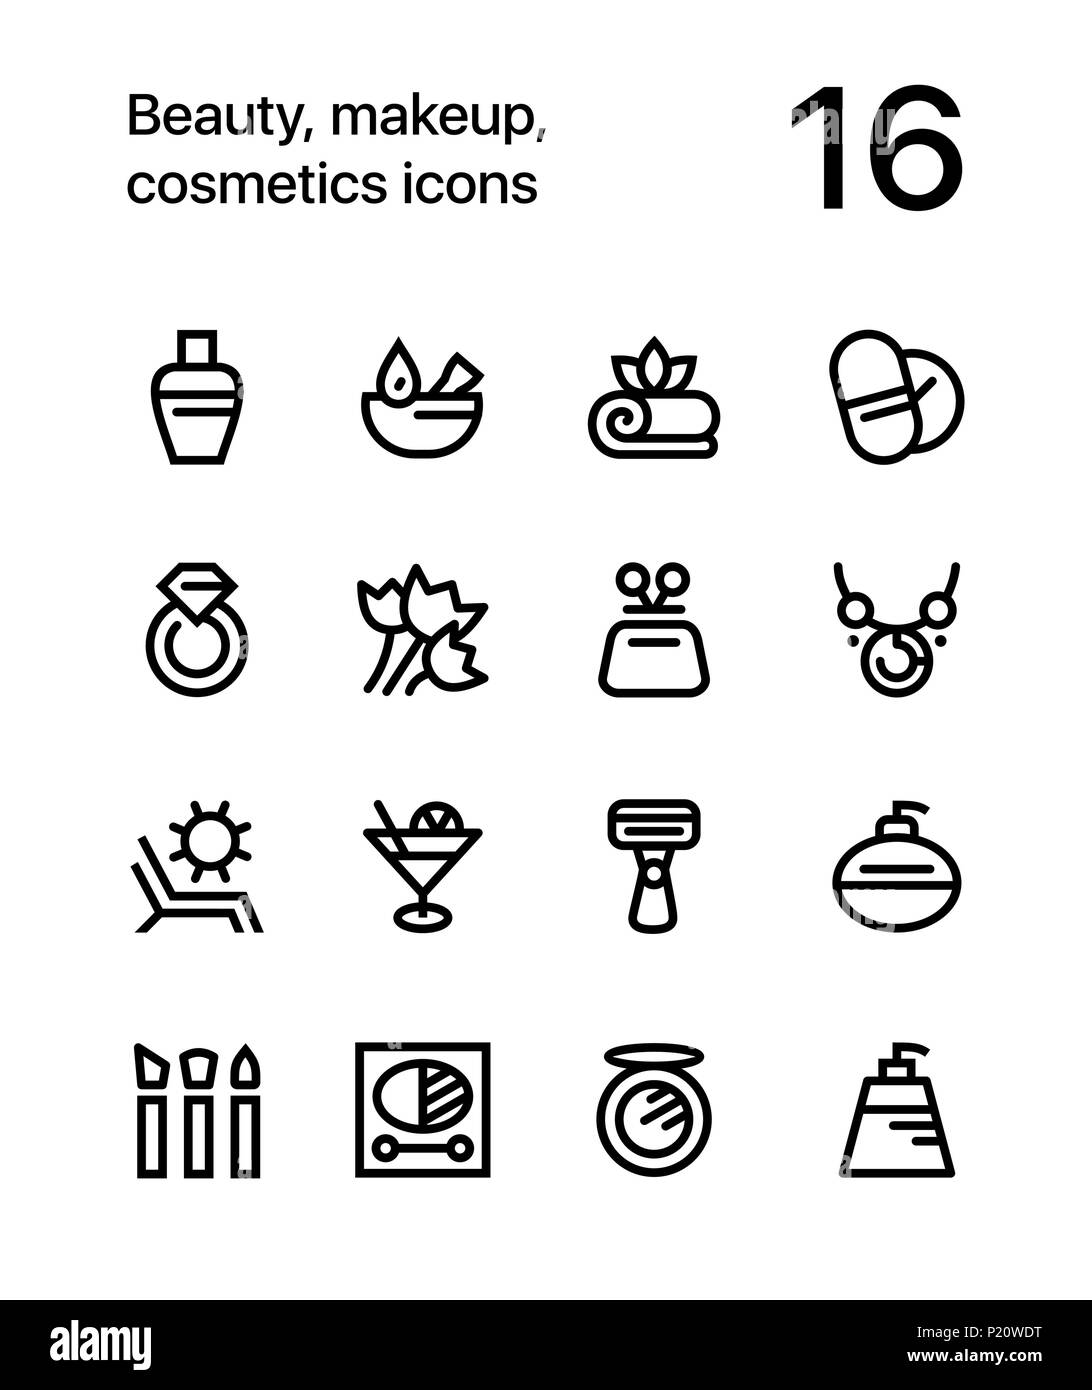 Beauty, cosmetics, makeup icons for web and mobile design pack 3 Stock Vector